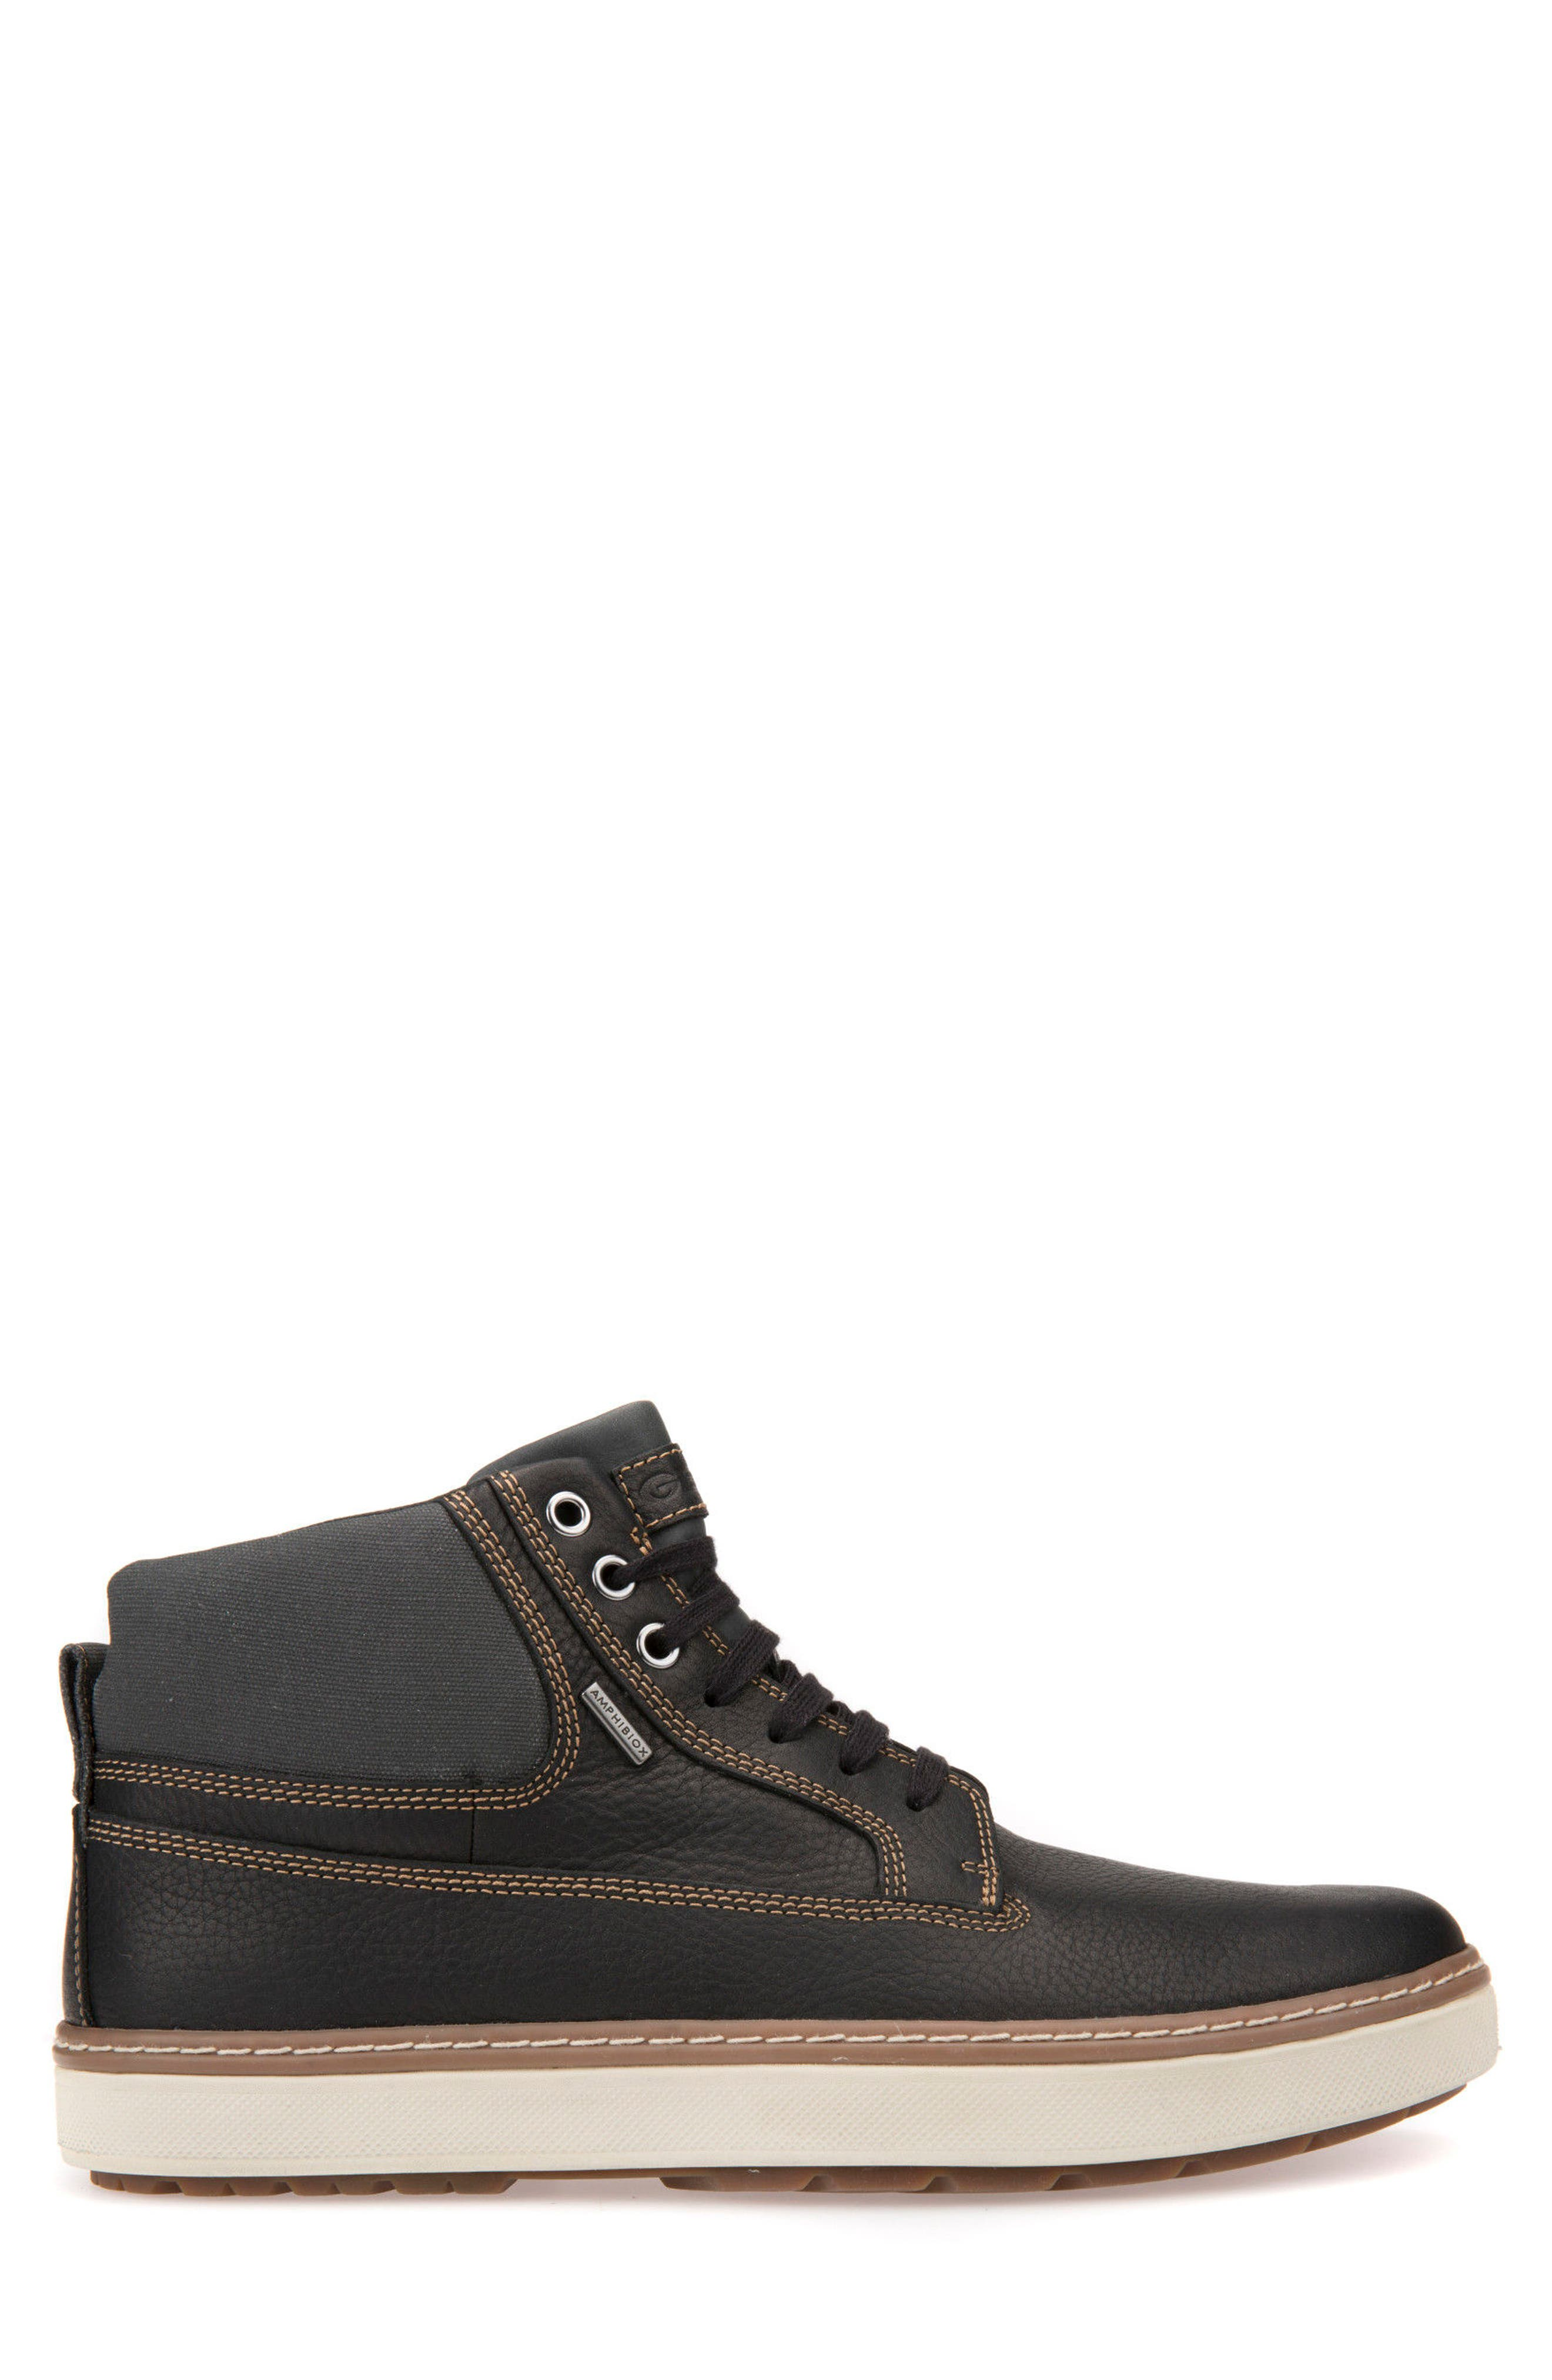 Alternate Image 3  - Geox Mattias B ABX Waterproof Sneaker Boot (Men)